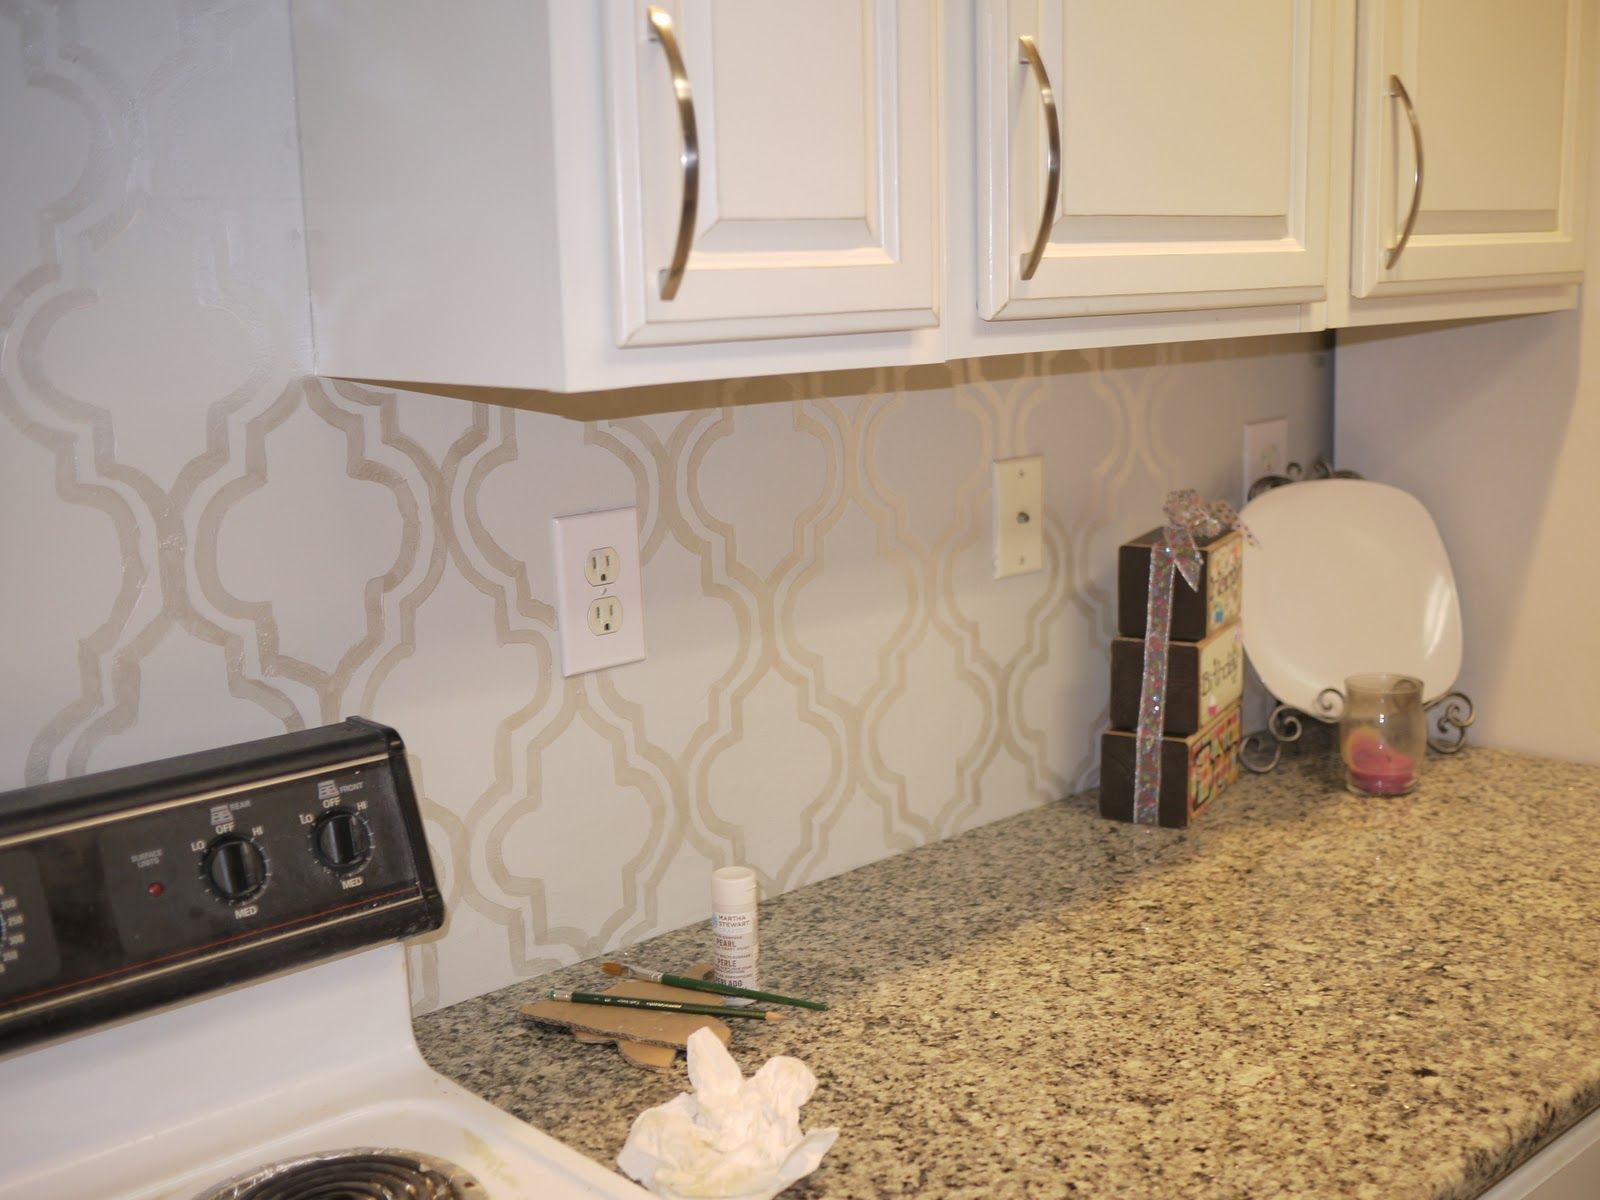 for the kitchen backsplash use a stencil and paint in with an for the kitchen backsplash use a stencil and paint in with an ivory or light tan